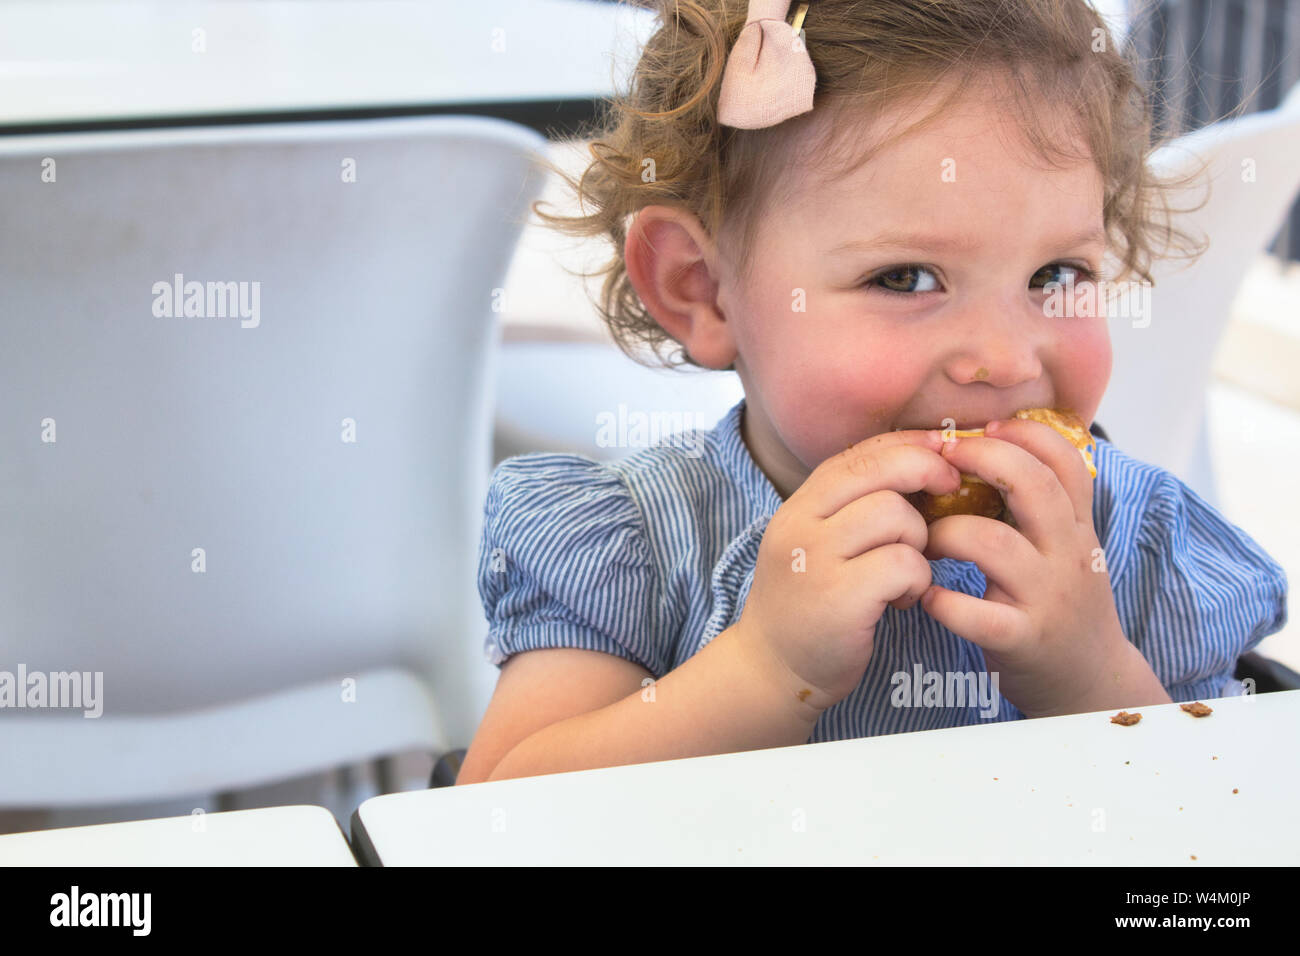 Stuffing Food Mouth Stock Photos & Stuffing Food Mouth Stock Images